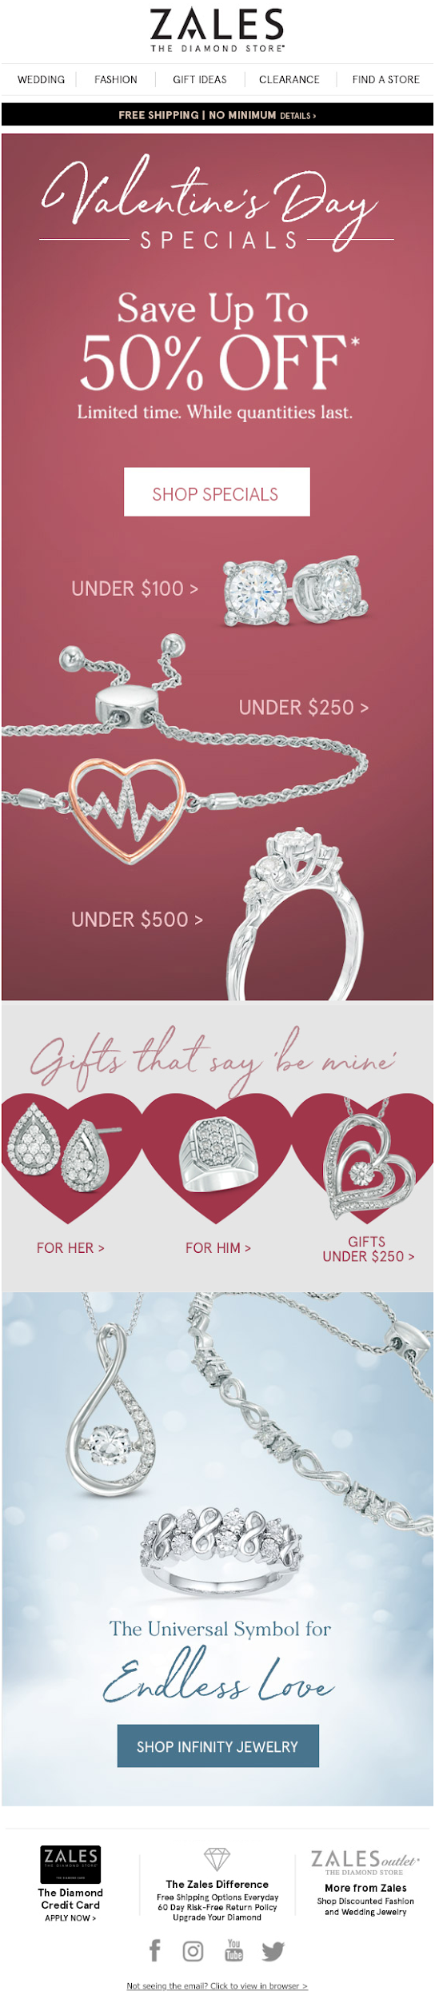 Save up to 50%, a Valentine's Day promo email by Zales